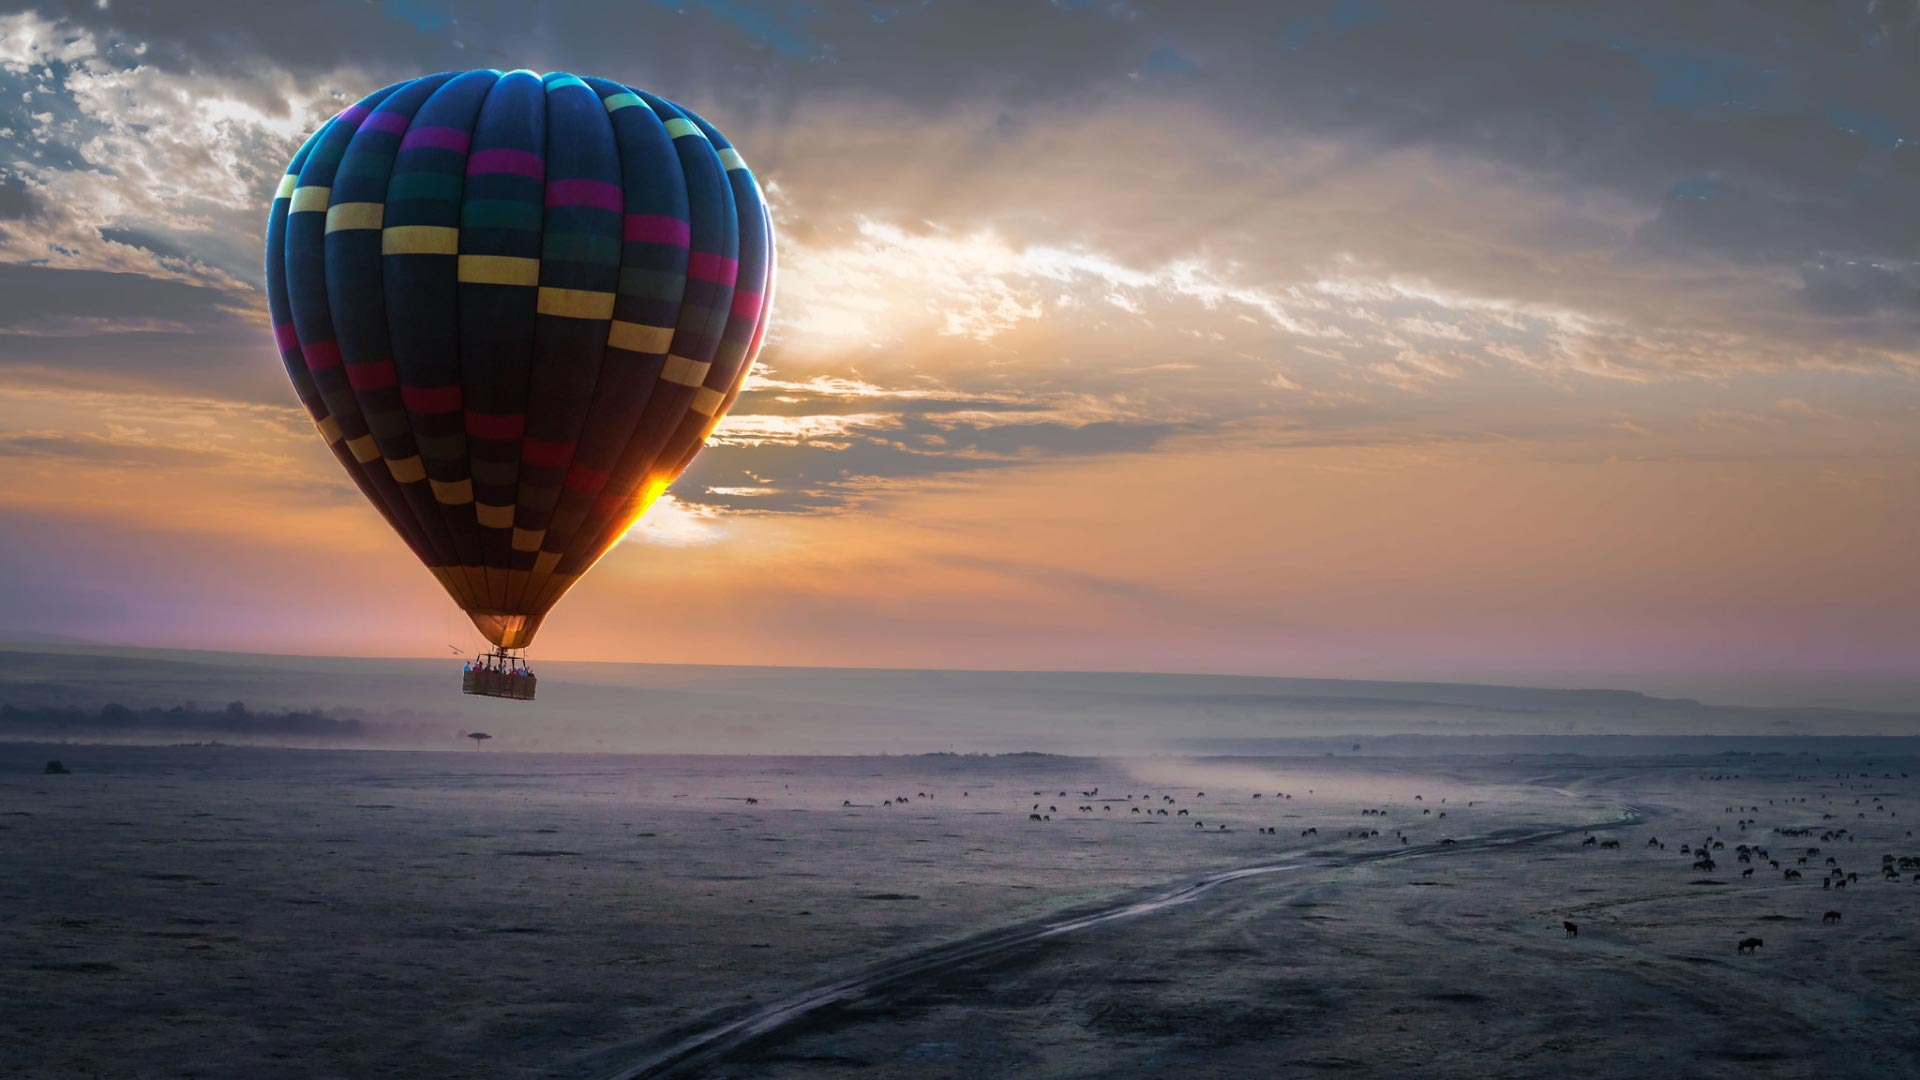 Hot Air Balloon Theme For Windows 10 8 7